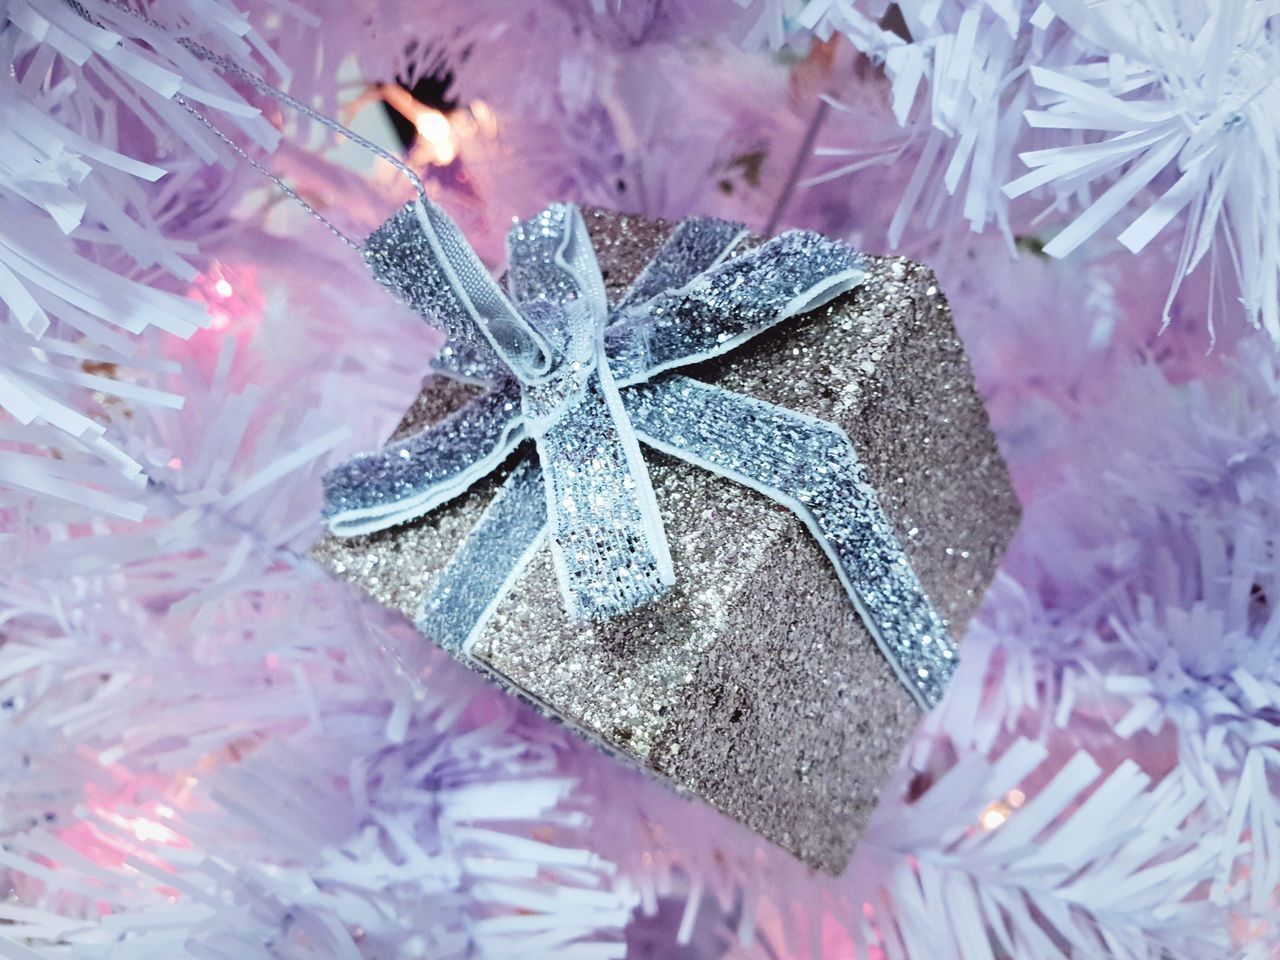 close-up, gift, bow, christmas decoration, celebration, christmas, decoration, tied bow, no people, holiday, ribbon, ribbon - sewing item, indoors, high angle view, event, pattern, nature, christmas ornament, gift box, box - container, wrapping paper, purple, silver colored